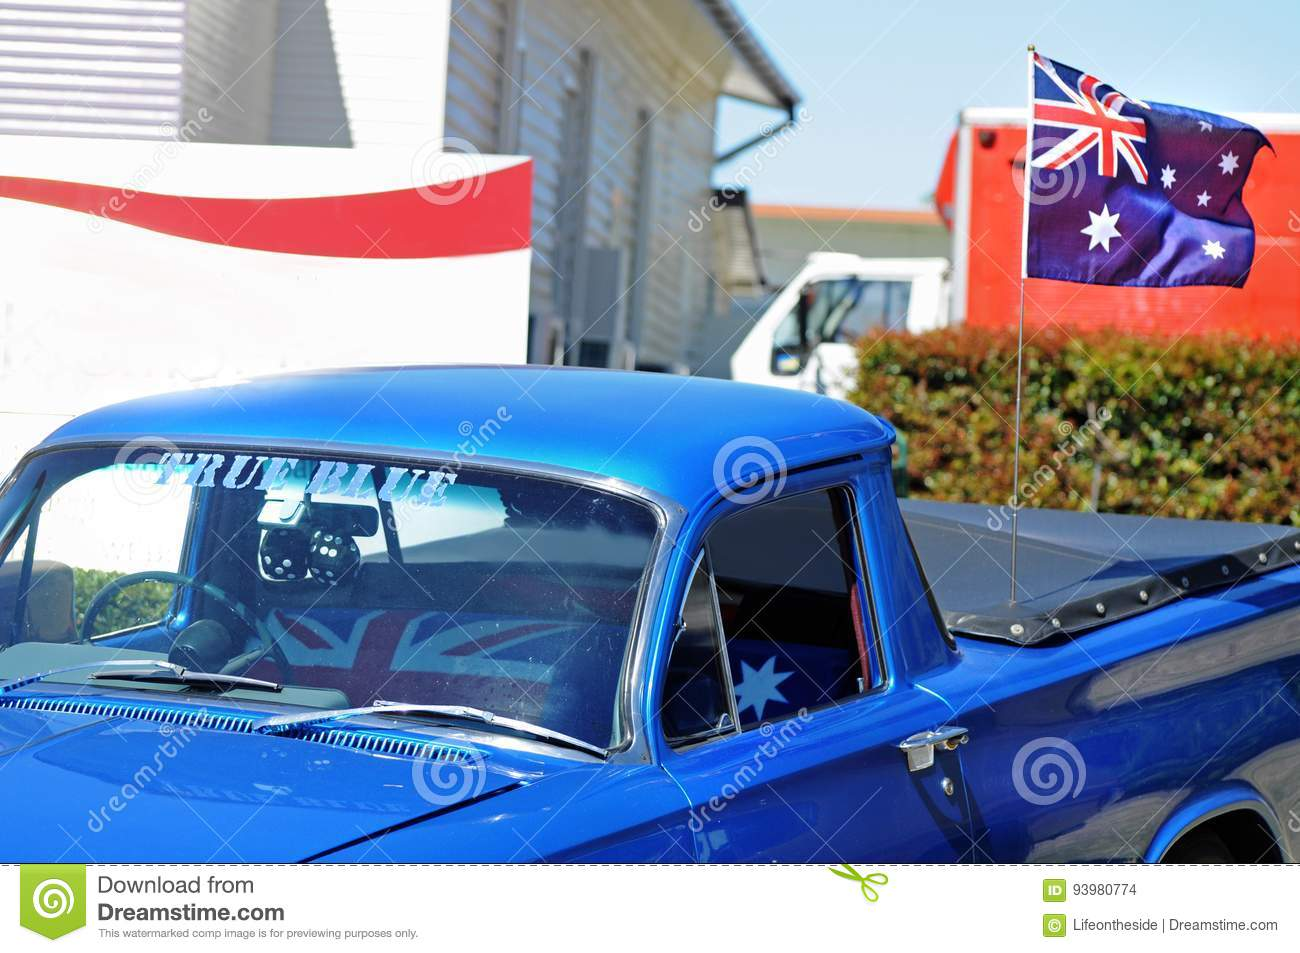 ... Australian who has painted his car blue called it True Blue  which means true friend in Australian slang flying the Aussie flag fixed onto the canopy ... & Australia Day True Blue Car Flying Flag Canopy Of Ute Stock Photo ...